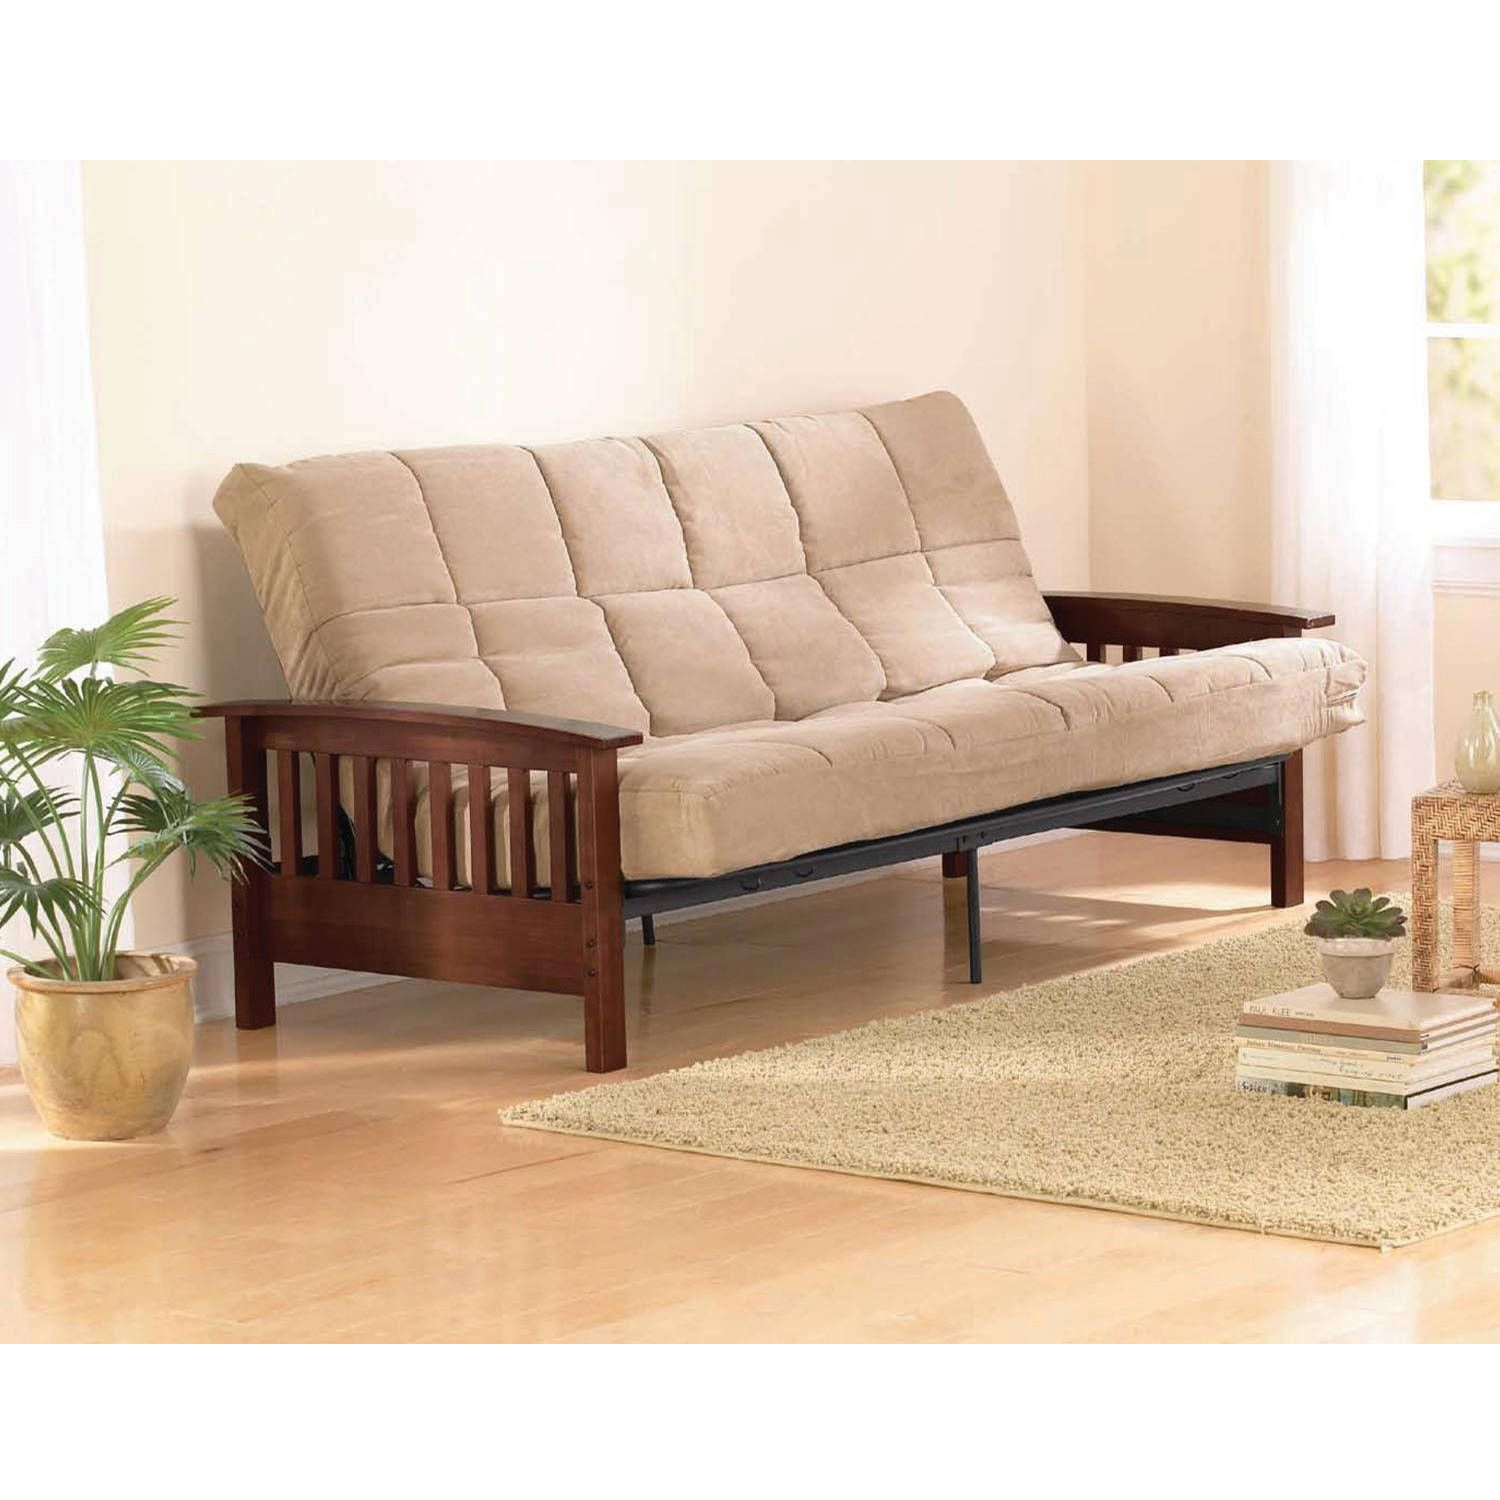 Awesome Couch Bed Walmart Beautiful Couch Bed Walmart 81 For Your Modern Sofa Inspiration With Couch Bed Walmart Ht Futon Sofa Futon Sets Sofa Bed Mattress